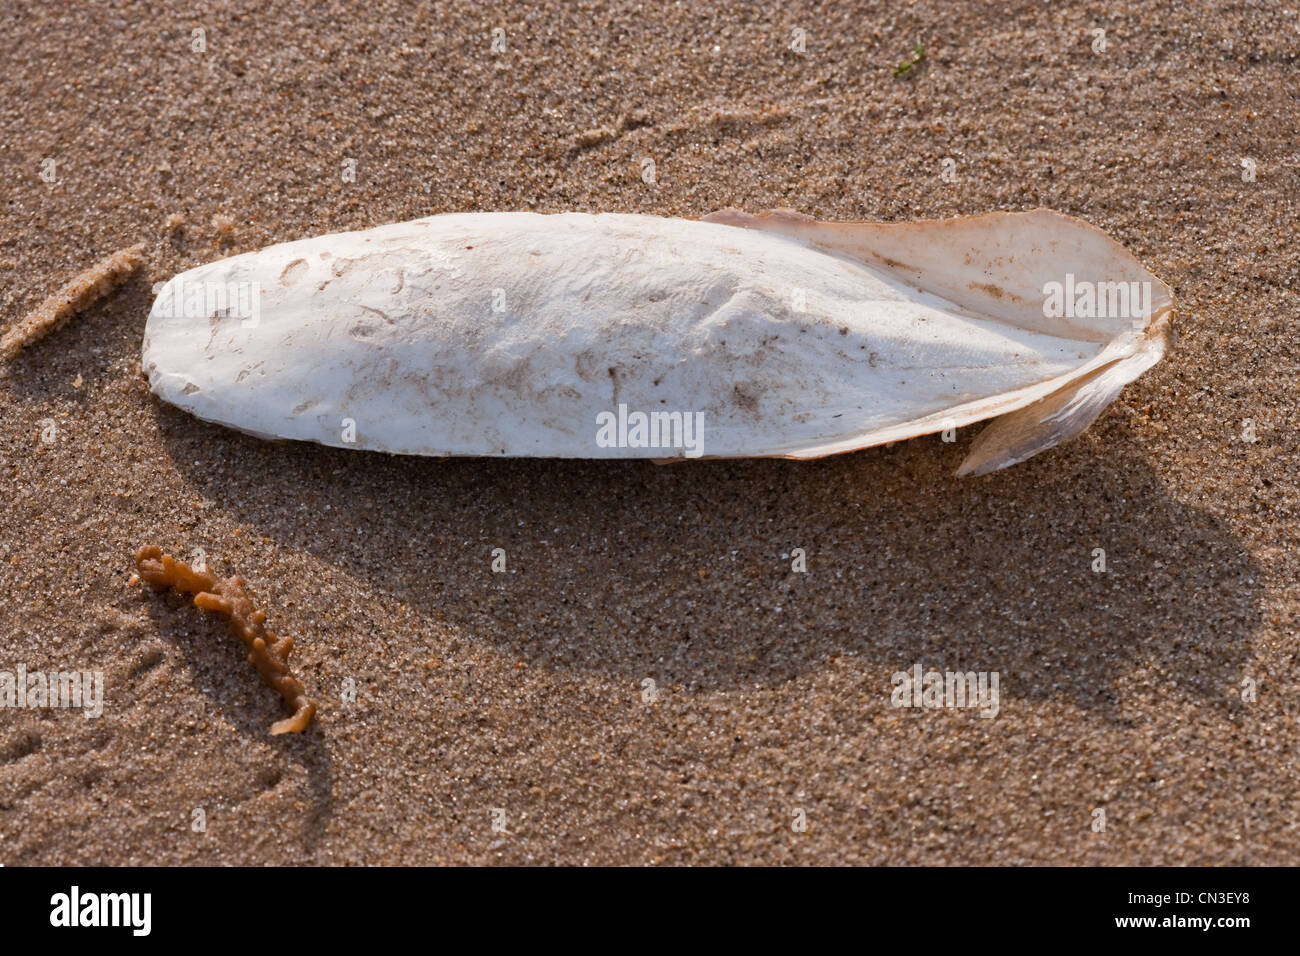 Cuttlefish Bone (Sepia officinalis). Calcareous support for living Stock Photo, Royalty Free Image: 47406108